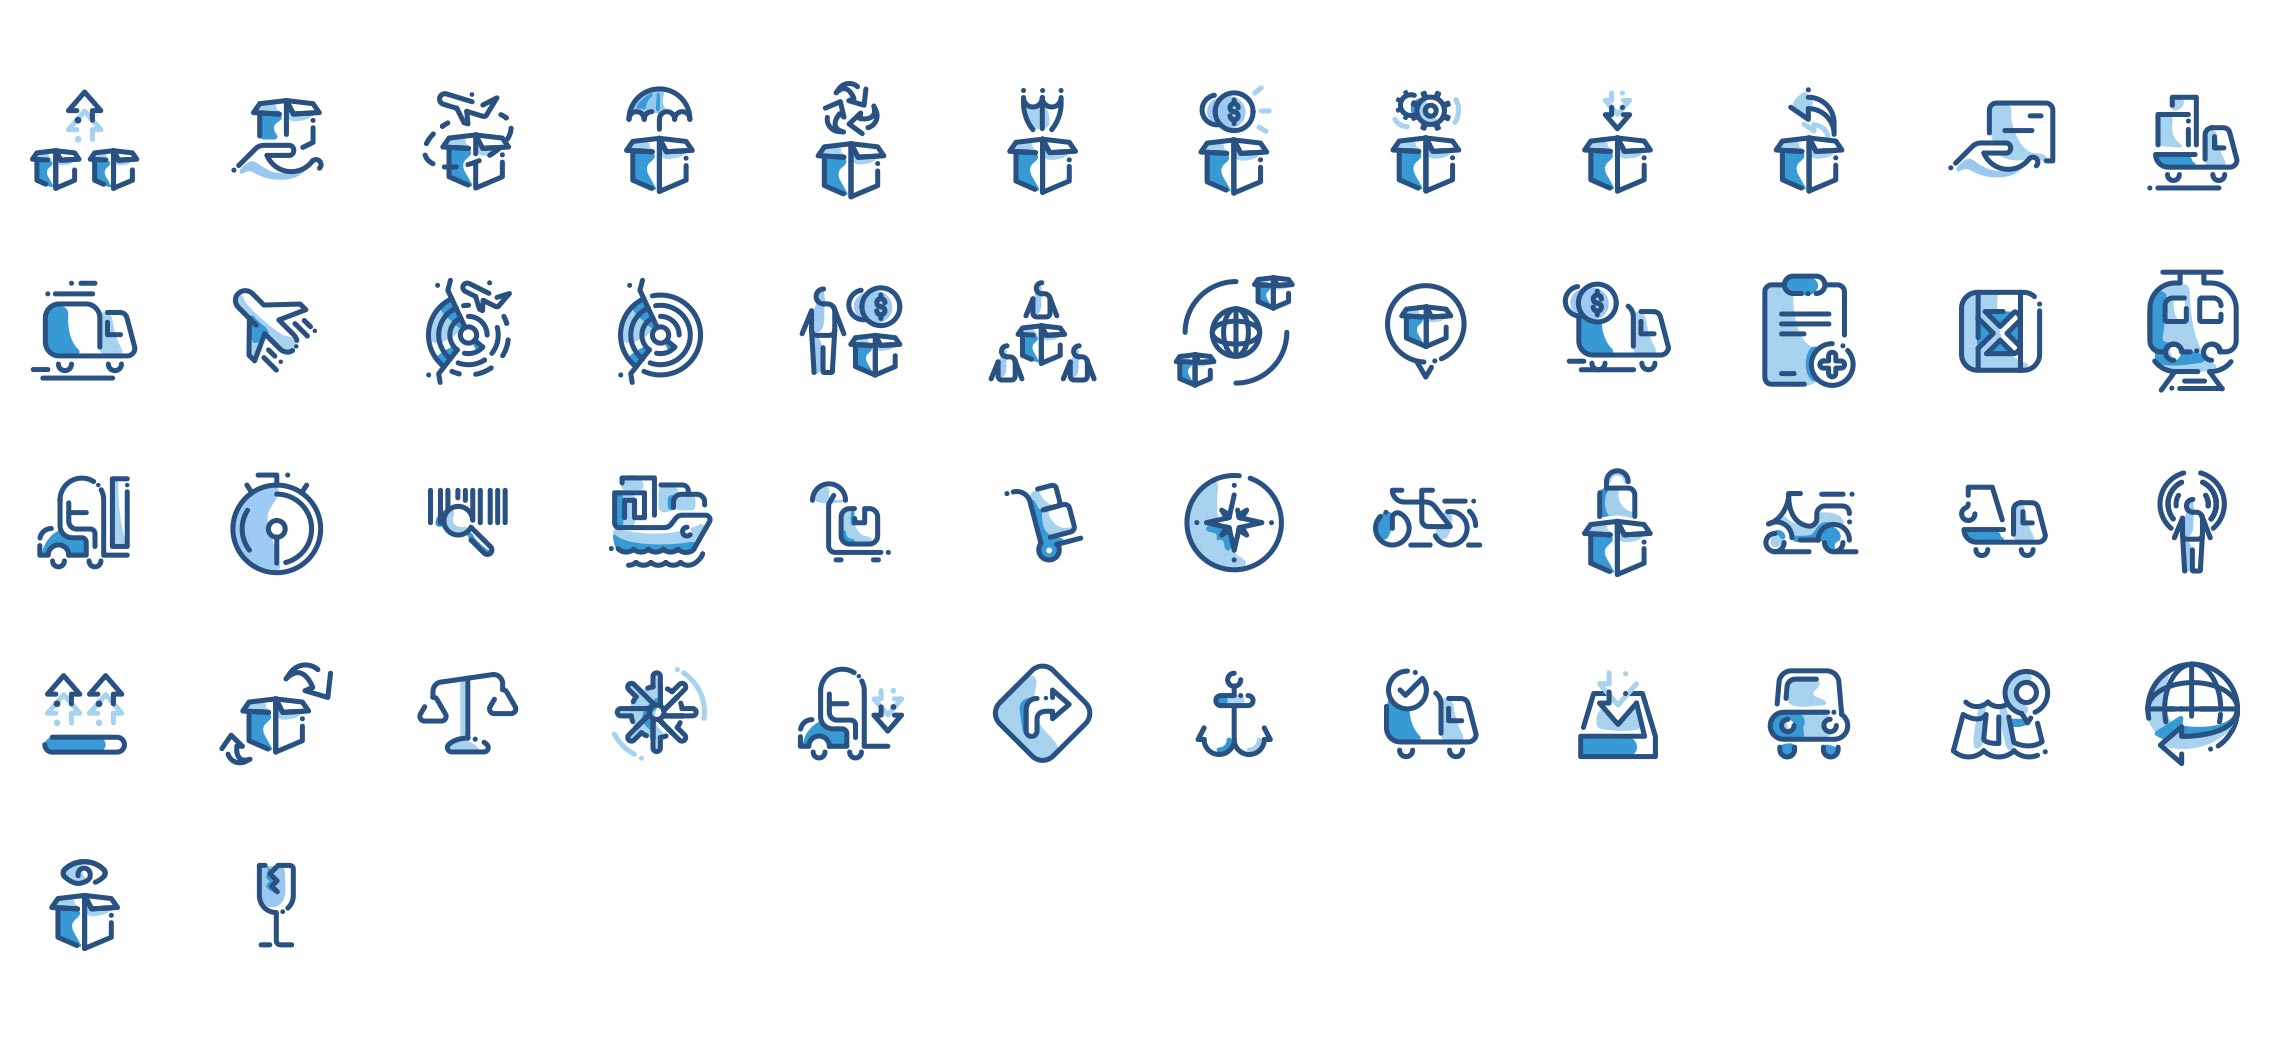 logisitic-icons-set-preview